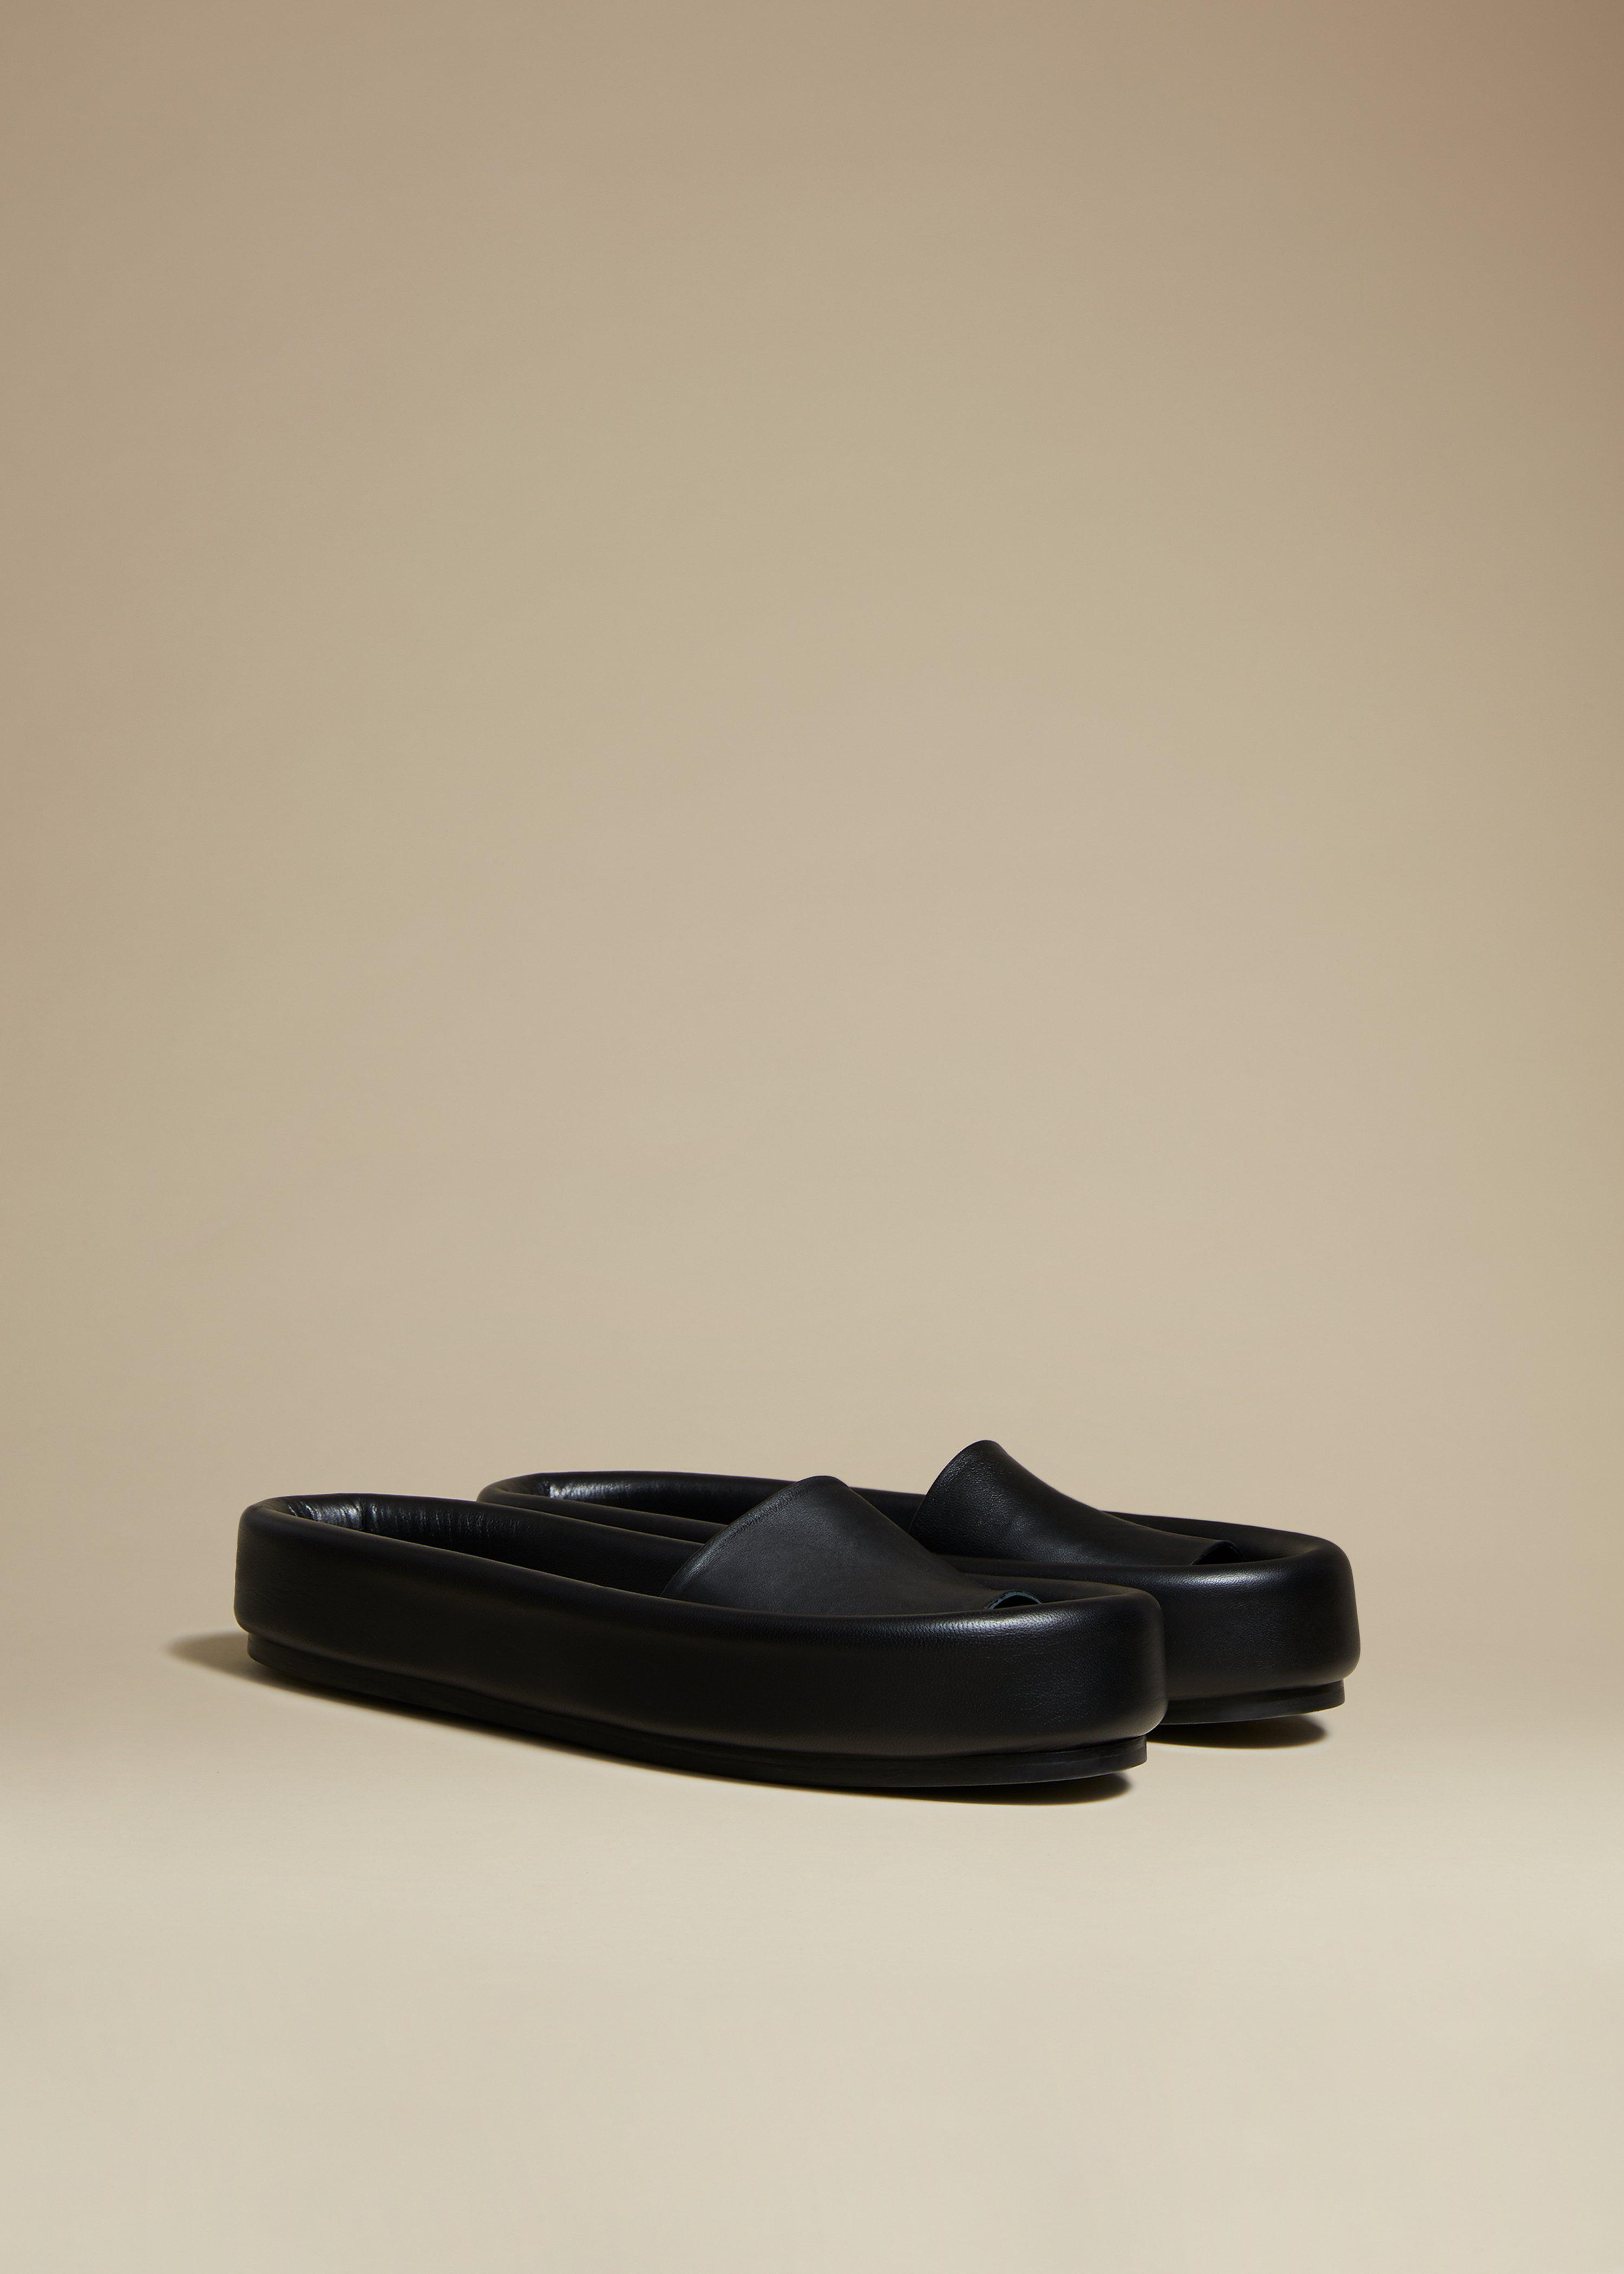 The Venice Sandal in Black Leather 1